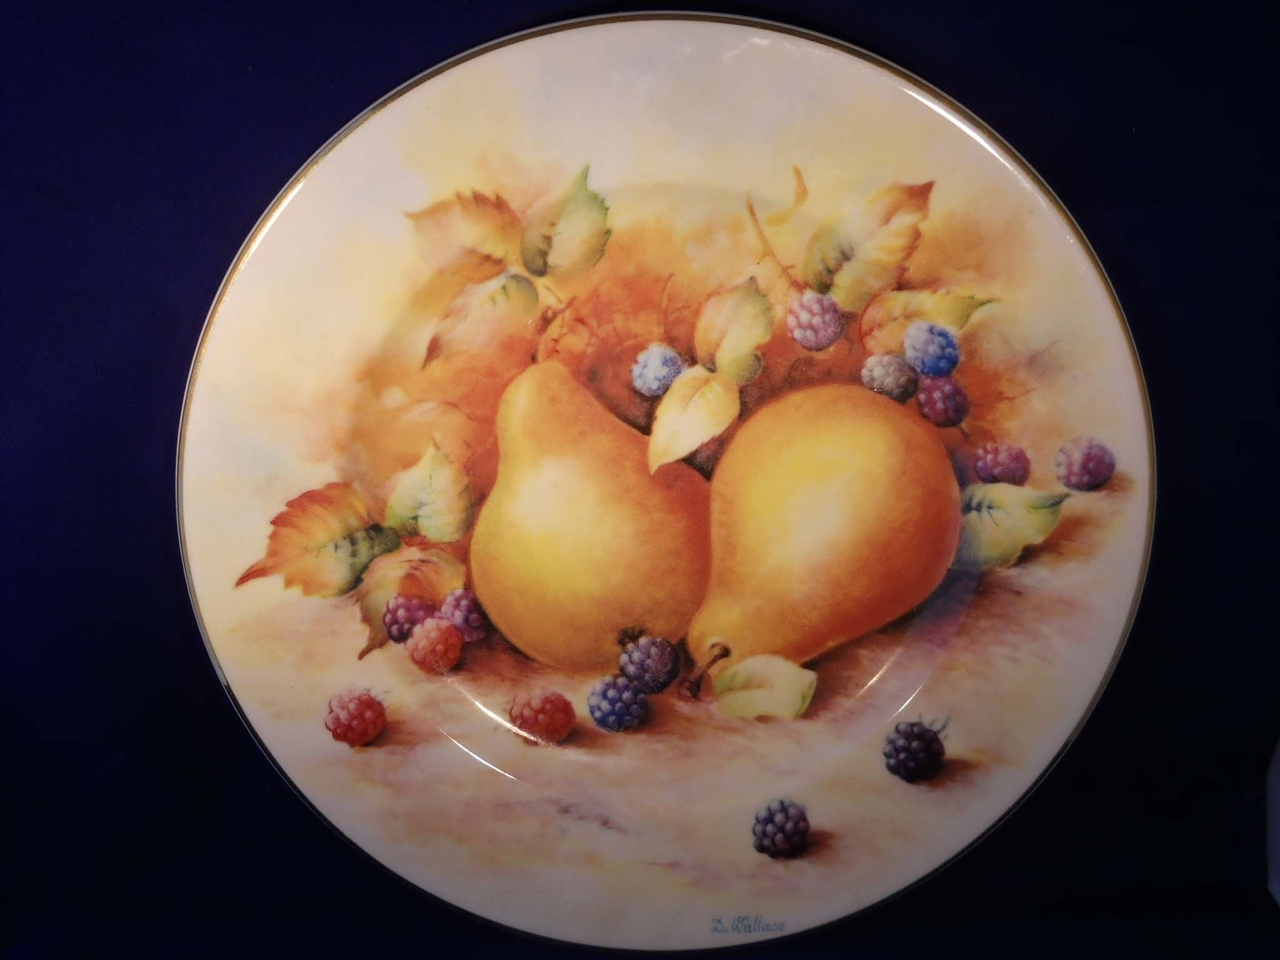 0002086_fenton_pear_decorative_plate_by_d_wallace